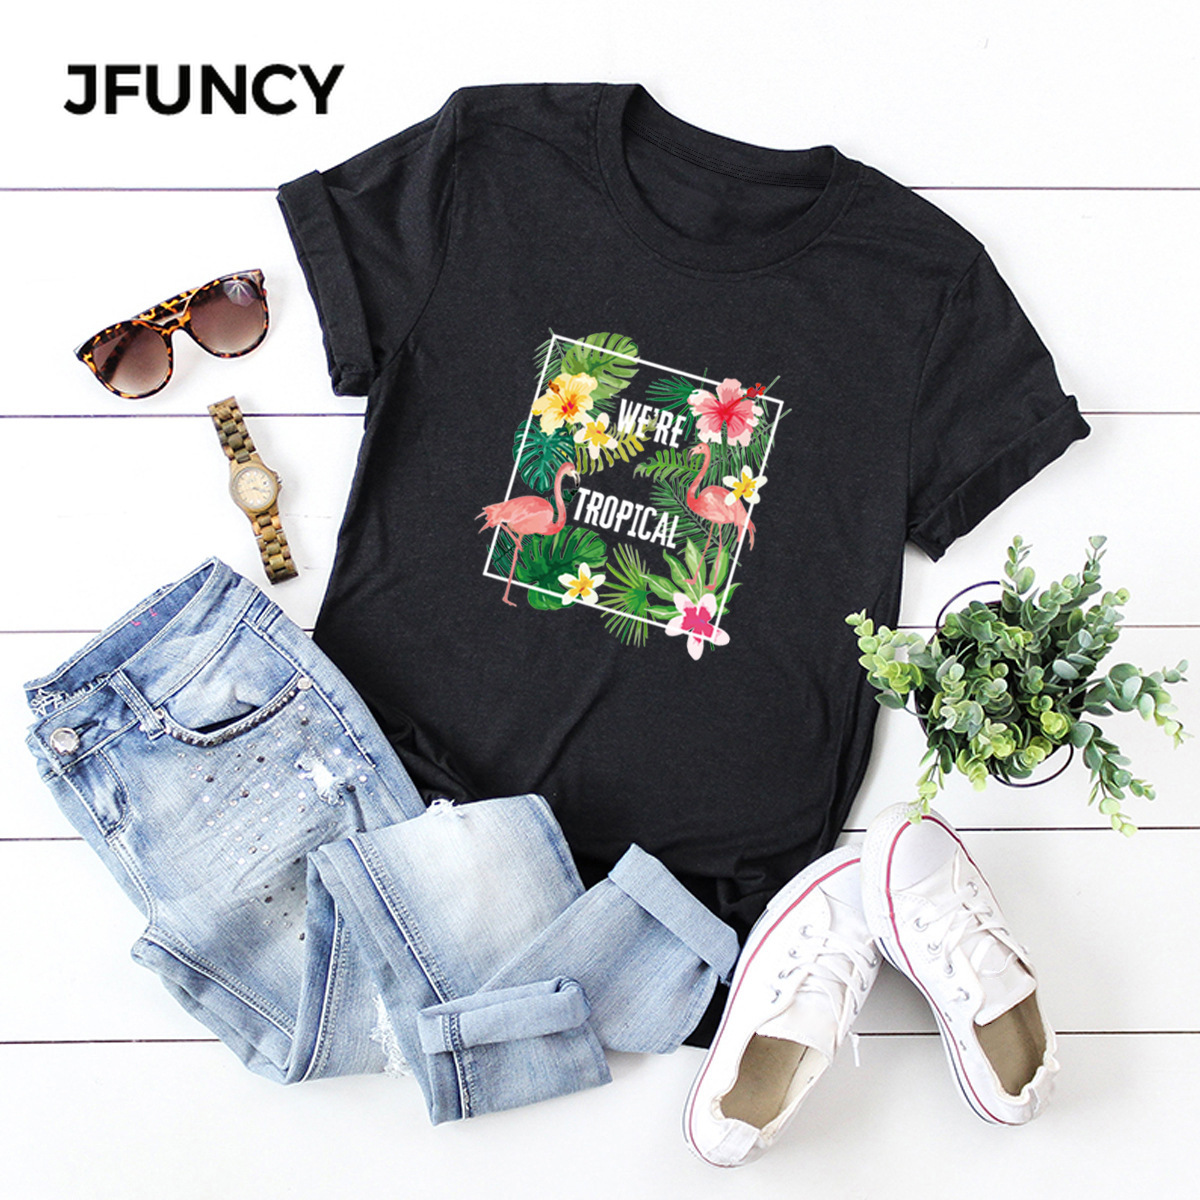 JFUNCY Flowers Printing Women T-Shirt New 100% Cotton Woman Shirts Plus Size Summer Casual Tshirt Short Sleeve Mujer Tees Tops